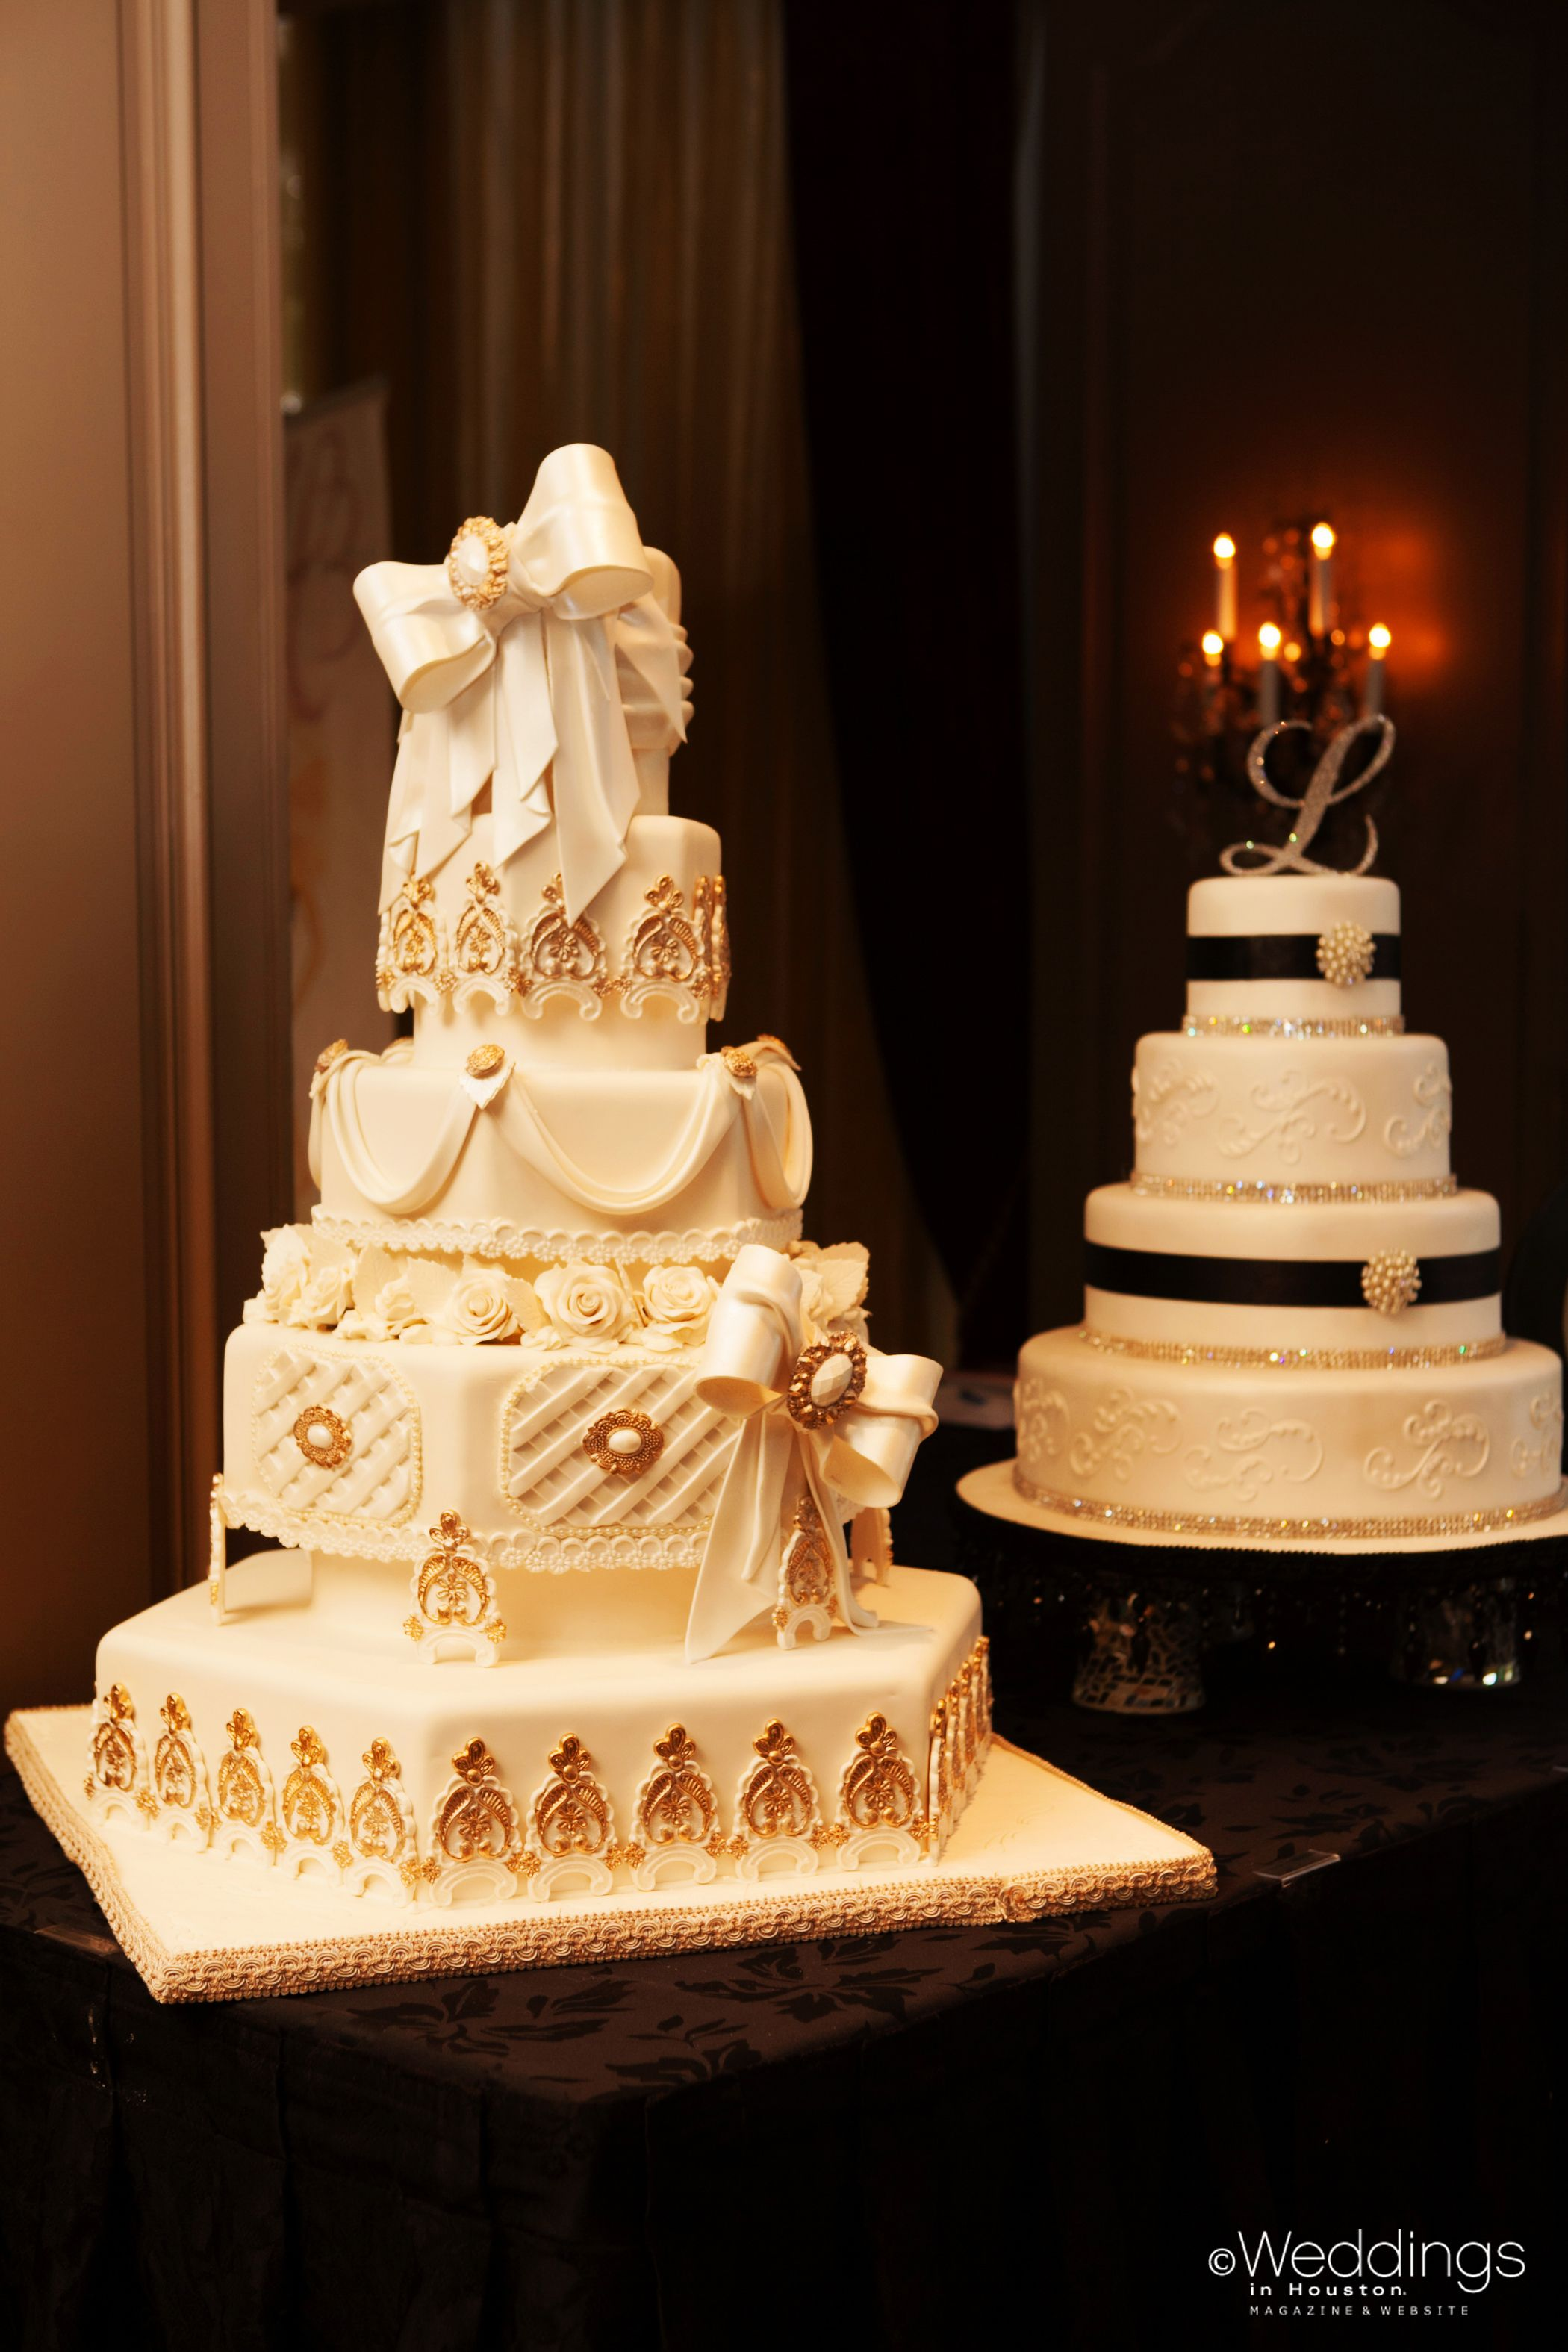 Five tiered ivory wedding cake accented with hints of gold and bows